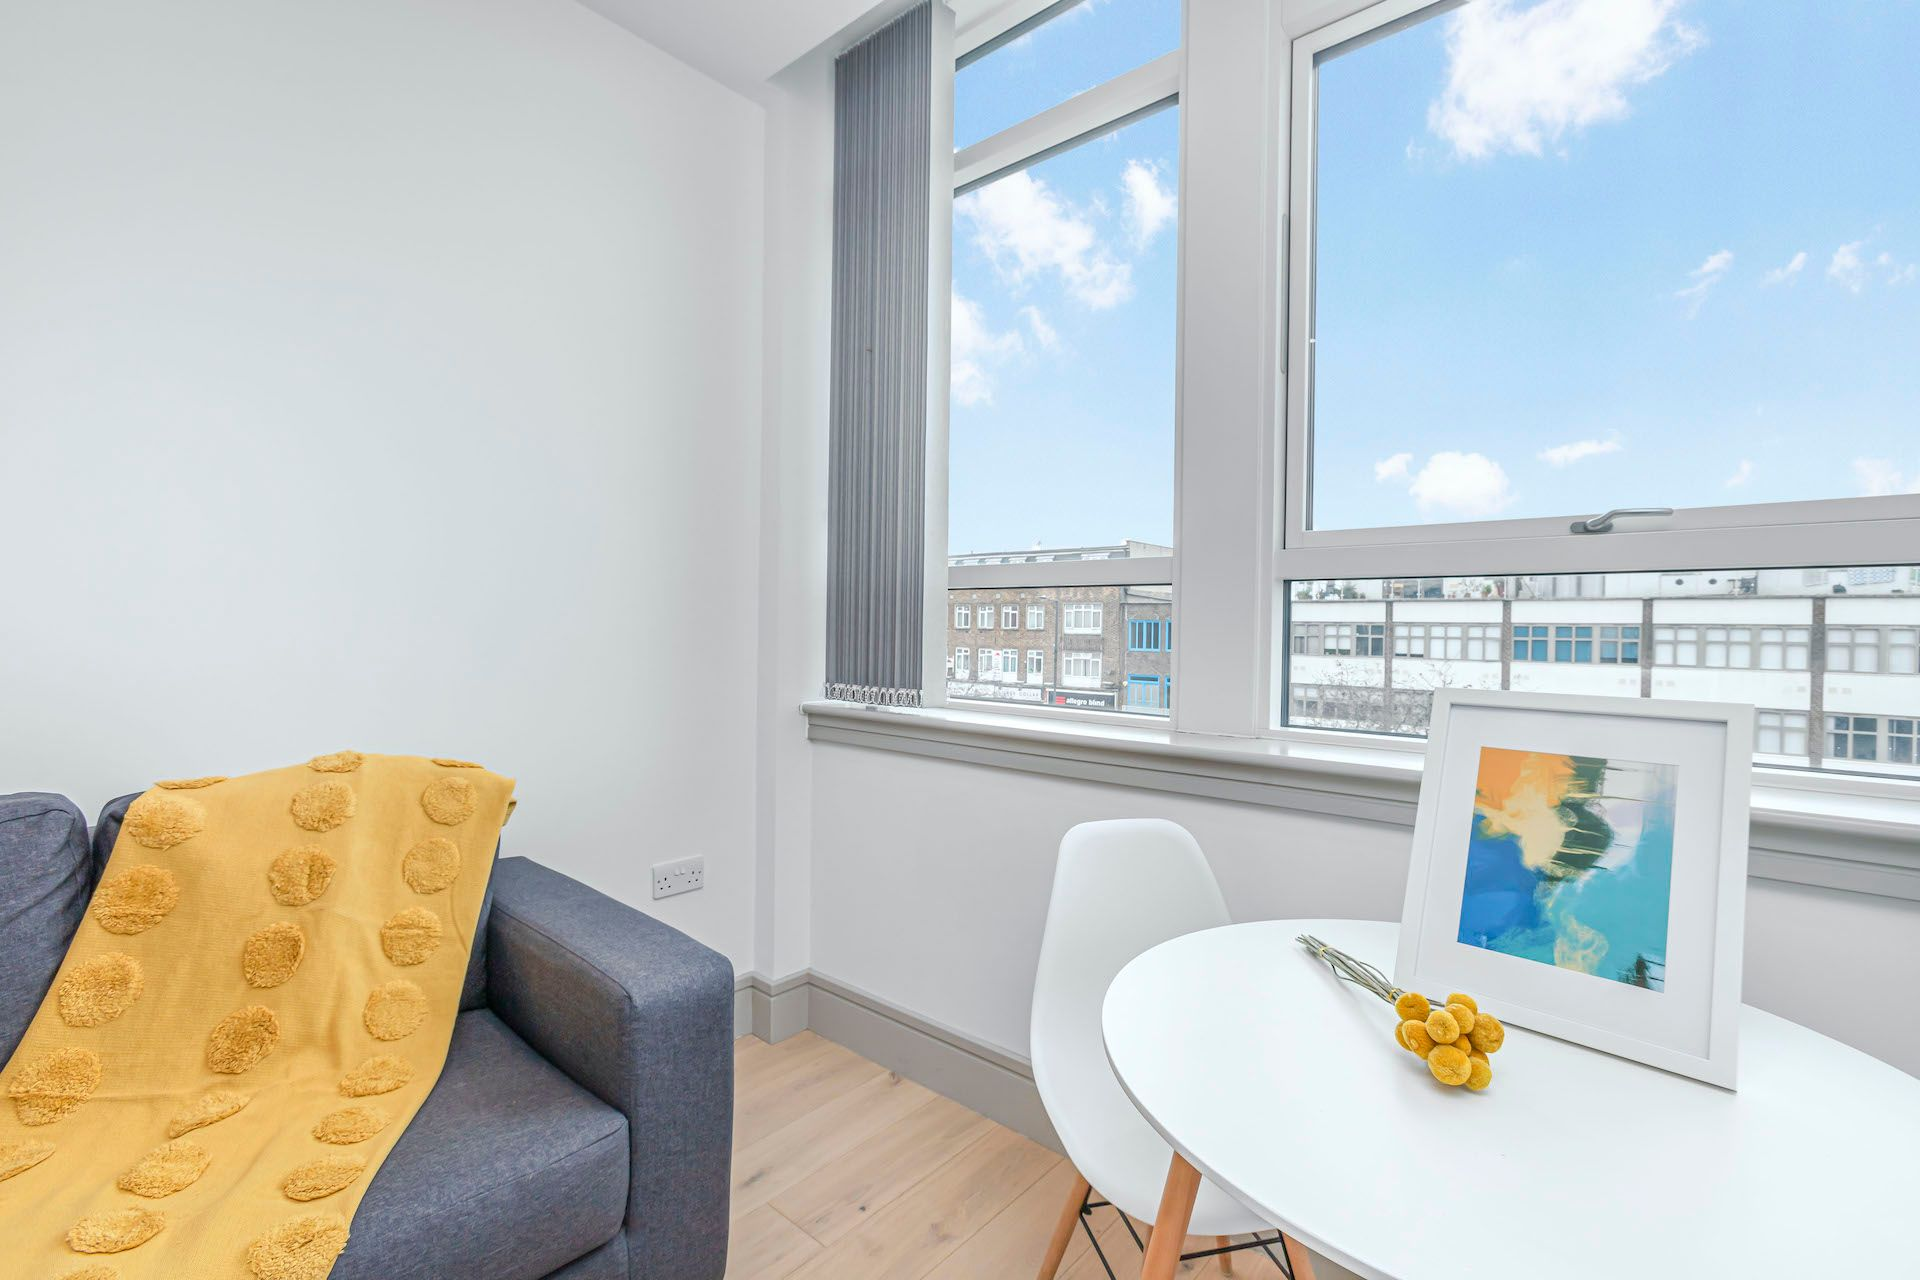 1 Bedroom apartment to rent in London BRO-BH-0135